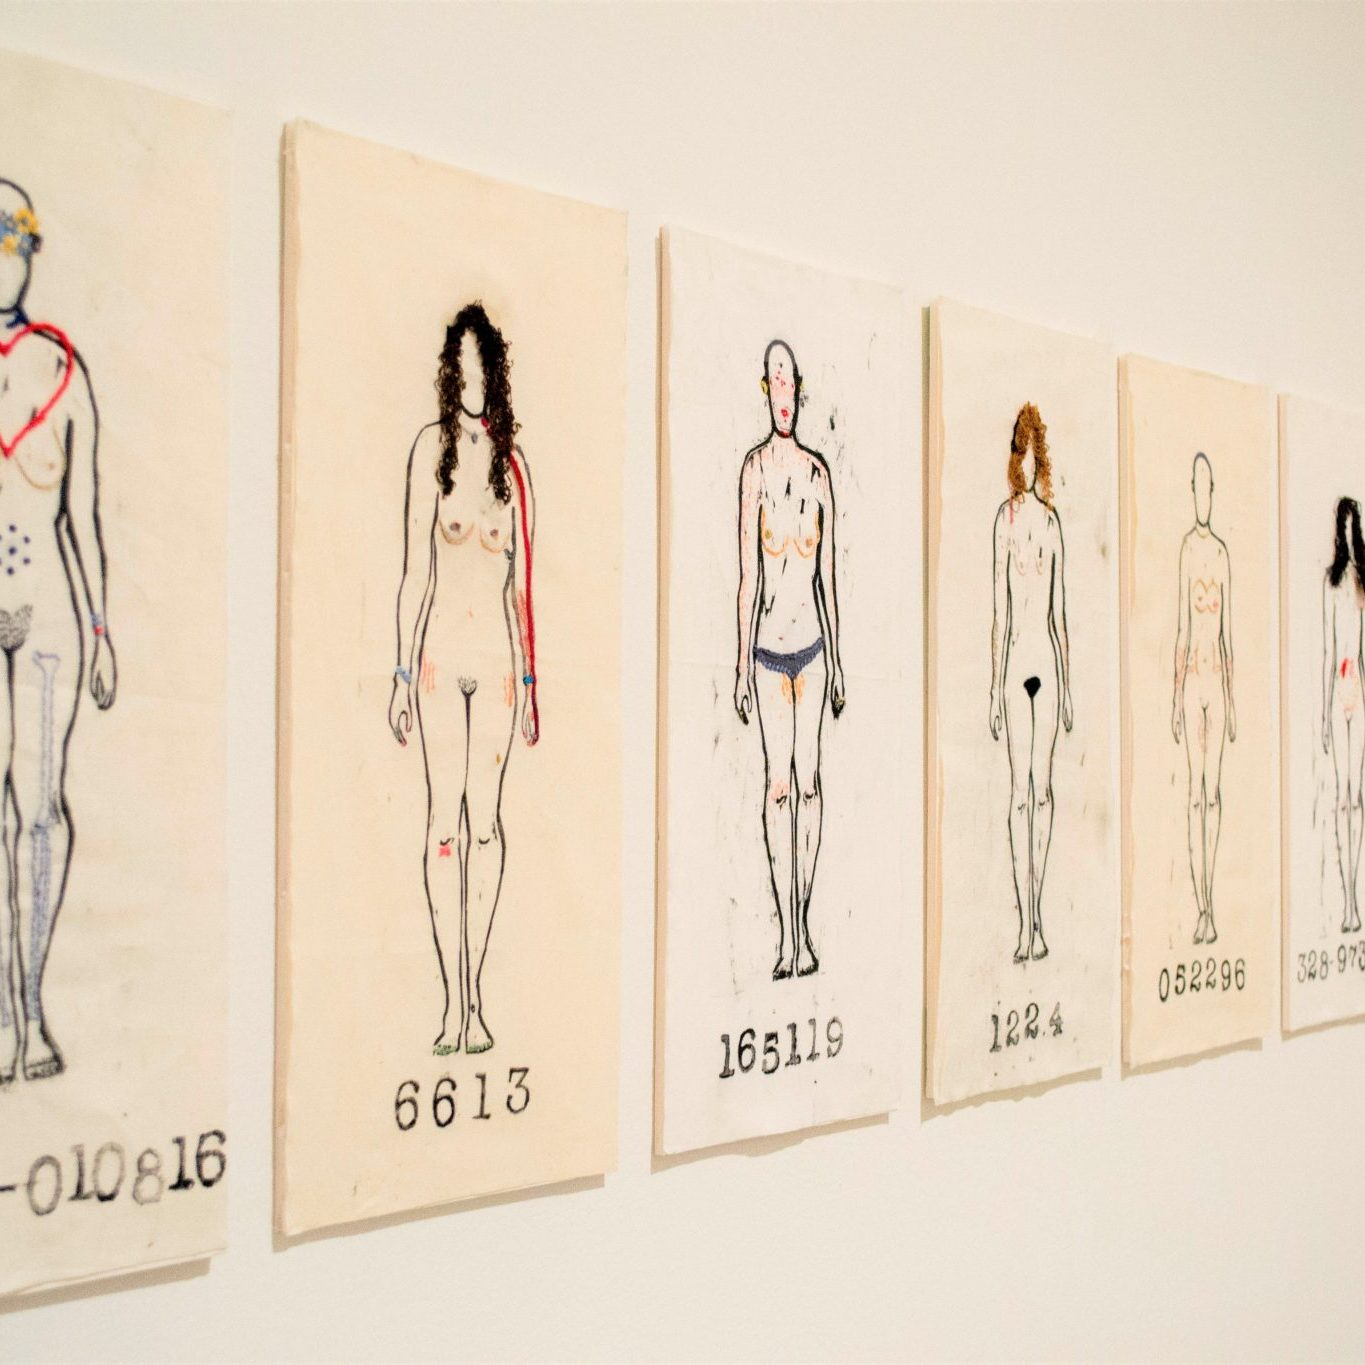 A row of 10 separate images of bodies outlines are embroidered in red and black hung side-by-side to form a horizontal line on the wall